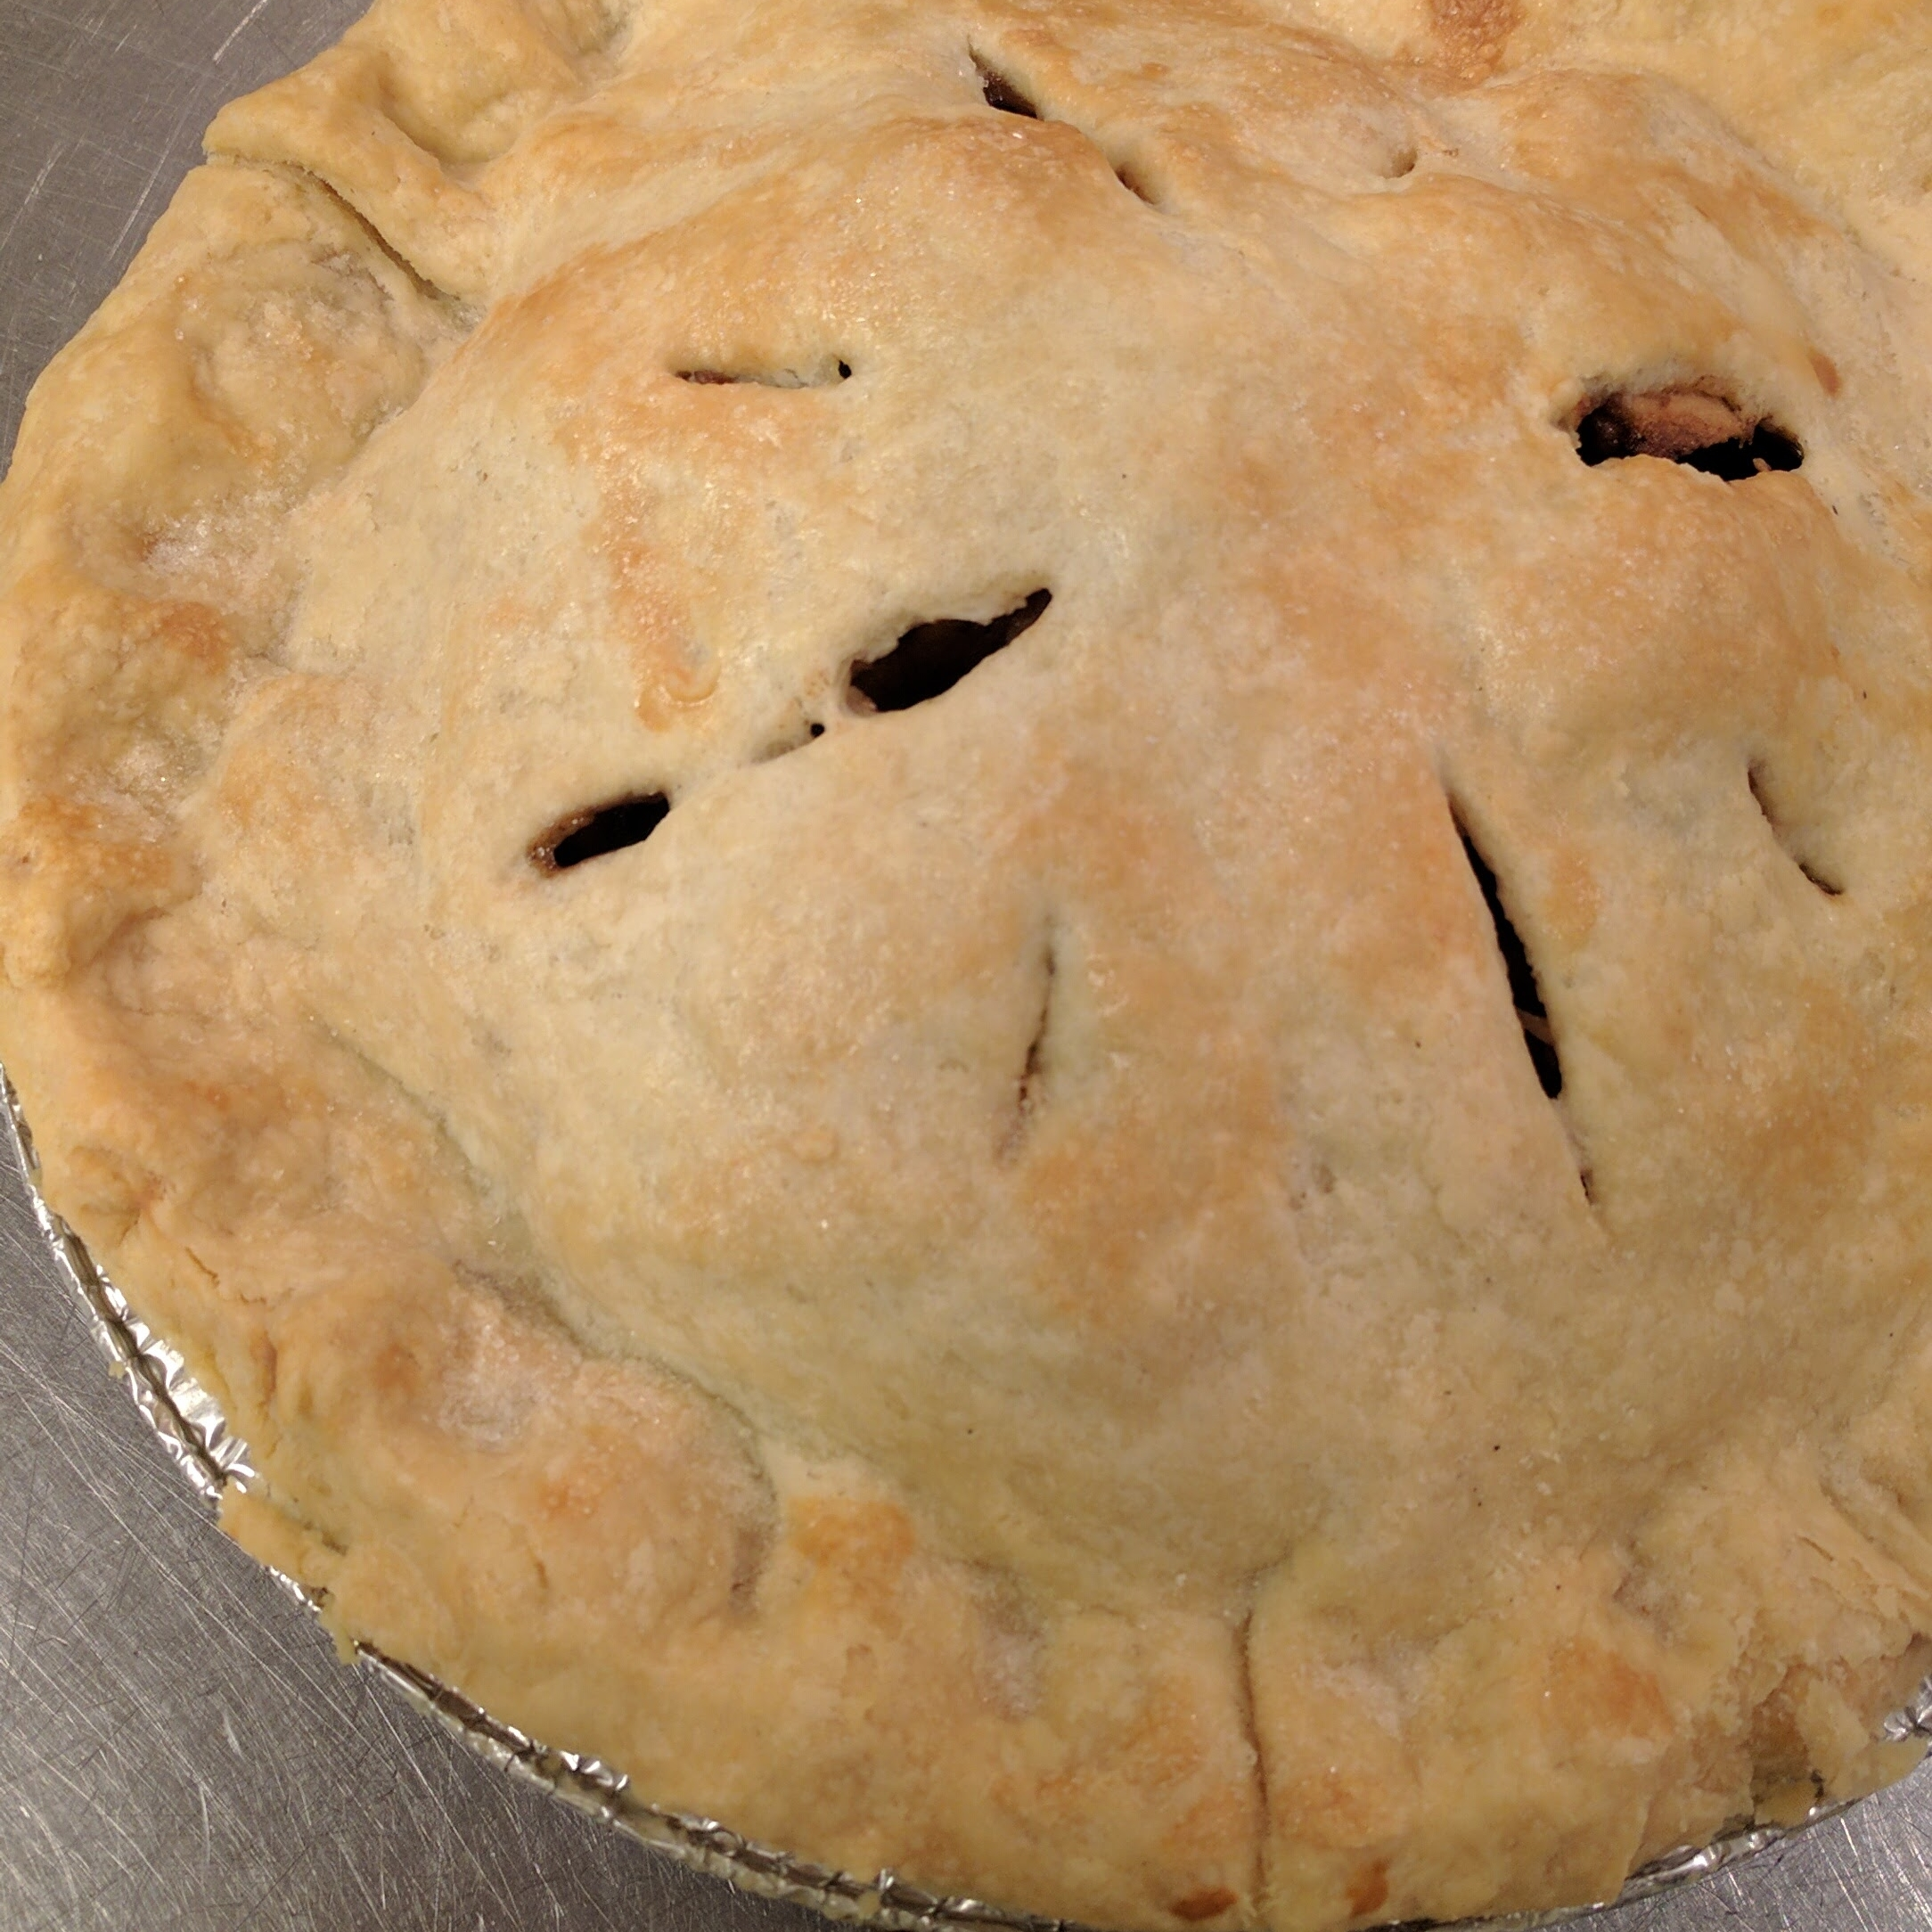 Apple   Generously heaped with spiced apples;topped with a flaky, hand-rolled crust and a sprinkling of sugar. $18